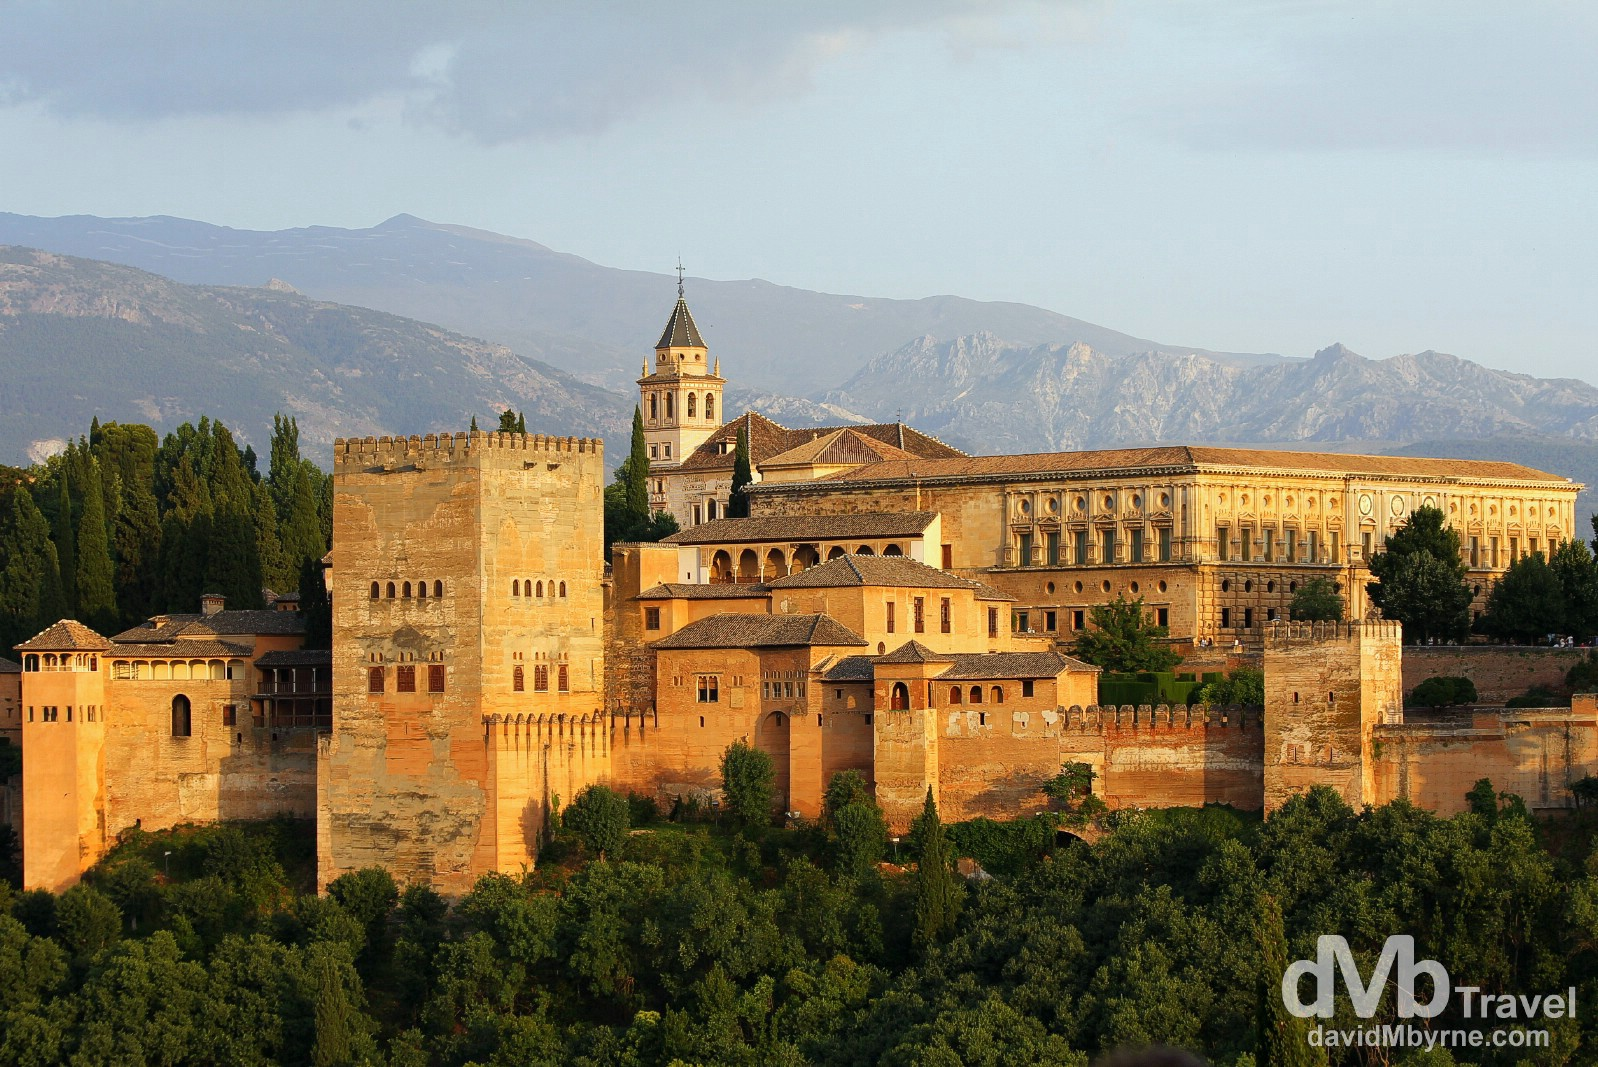 The Alhambra as seen from Mirador (gazebo) San Nicolas in Granada, Andalusia, Spain. June 11th, 2014.